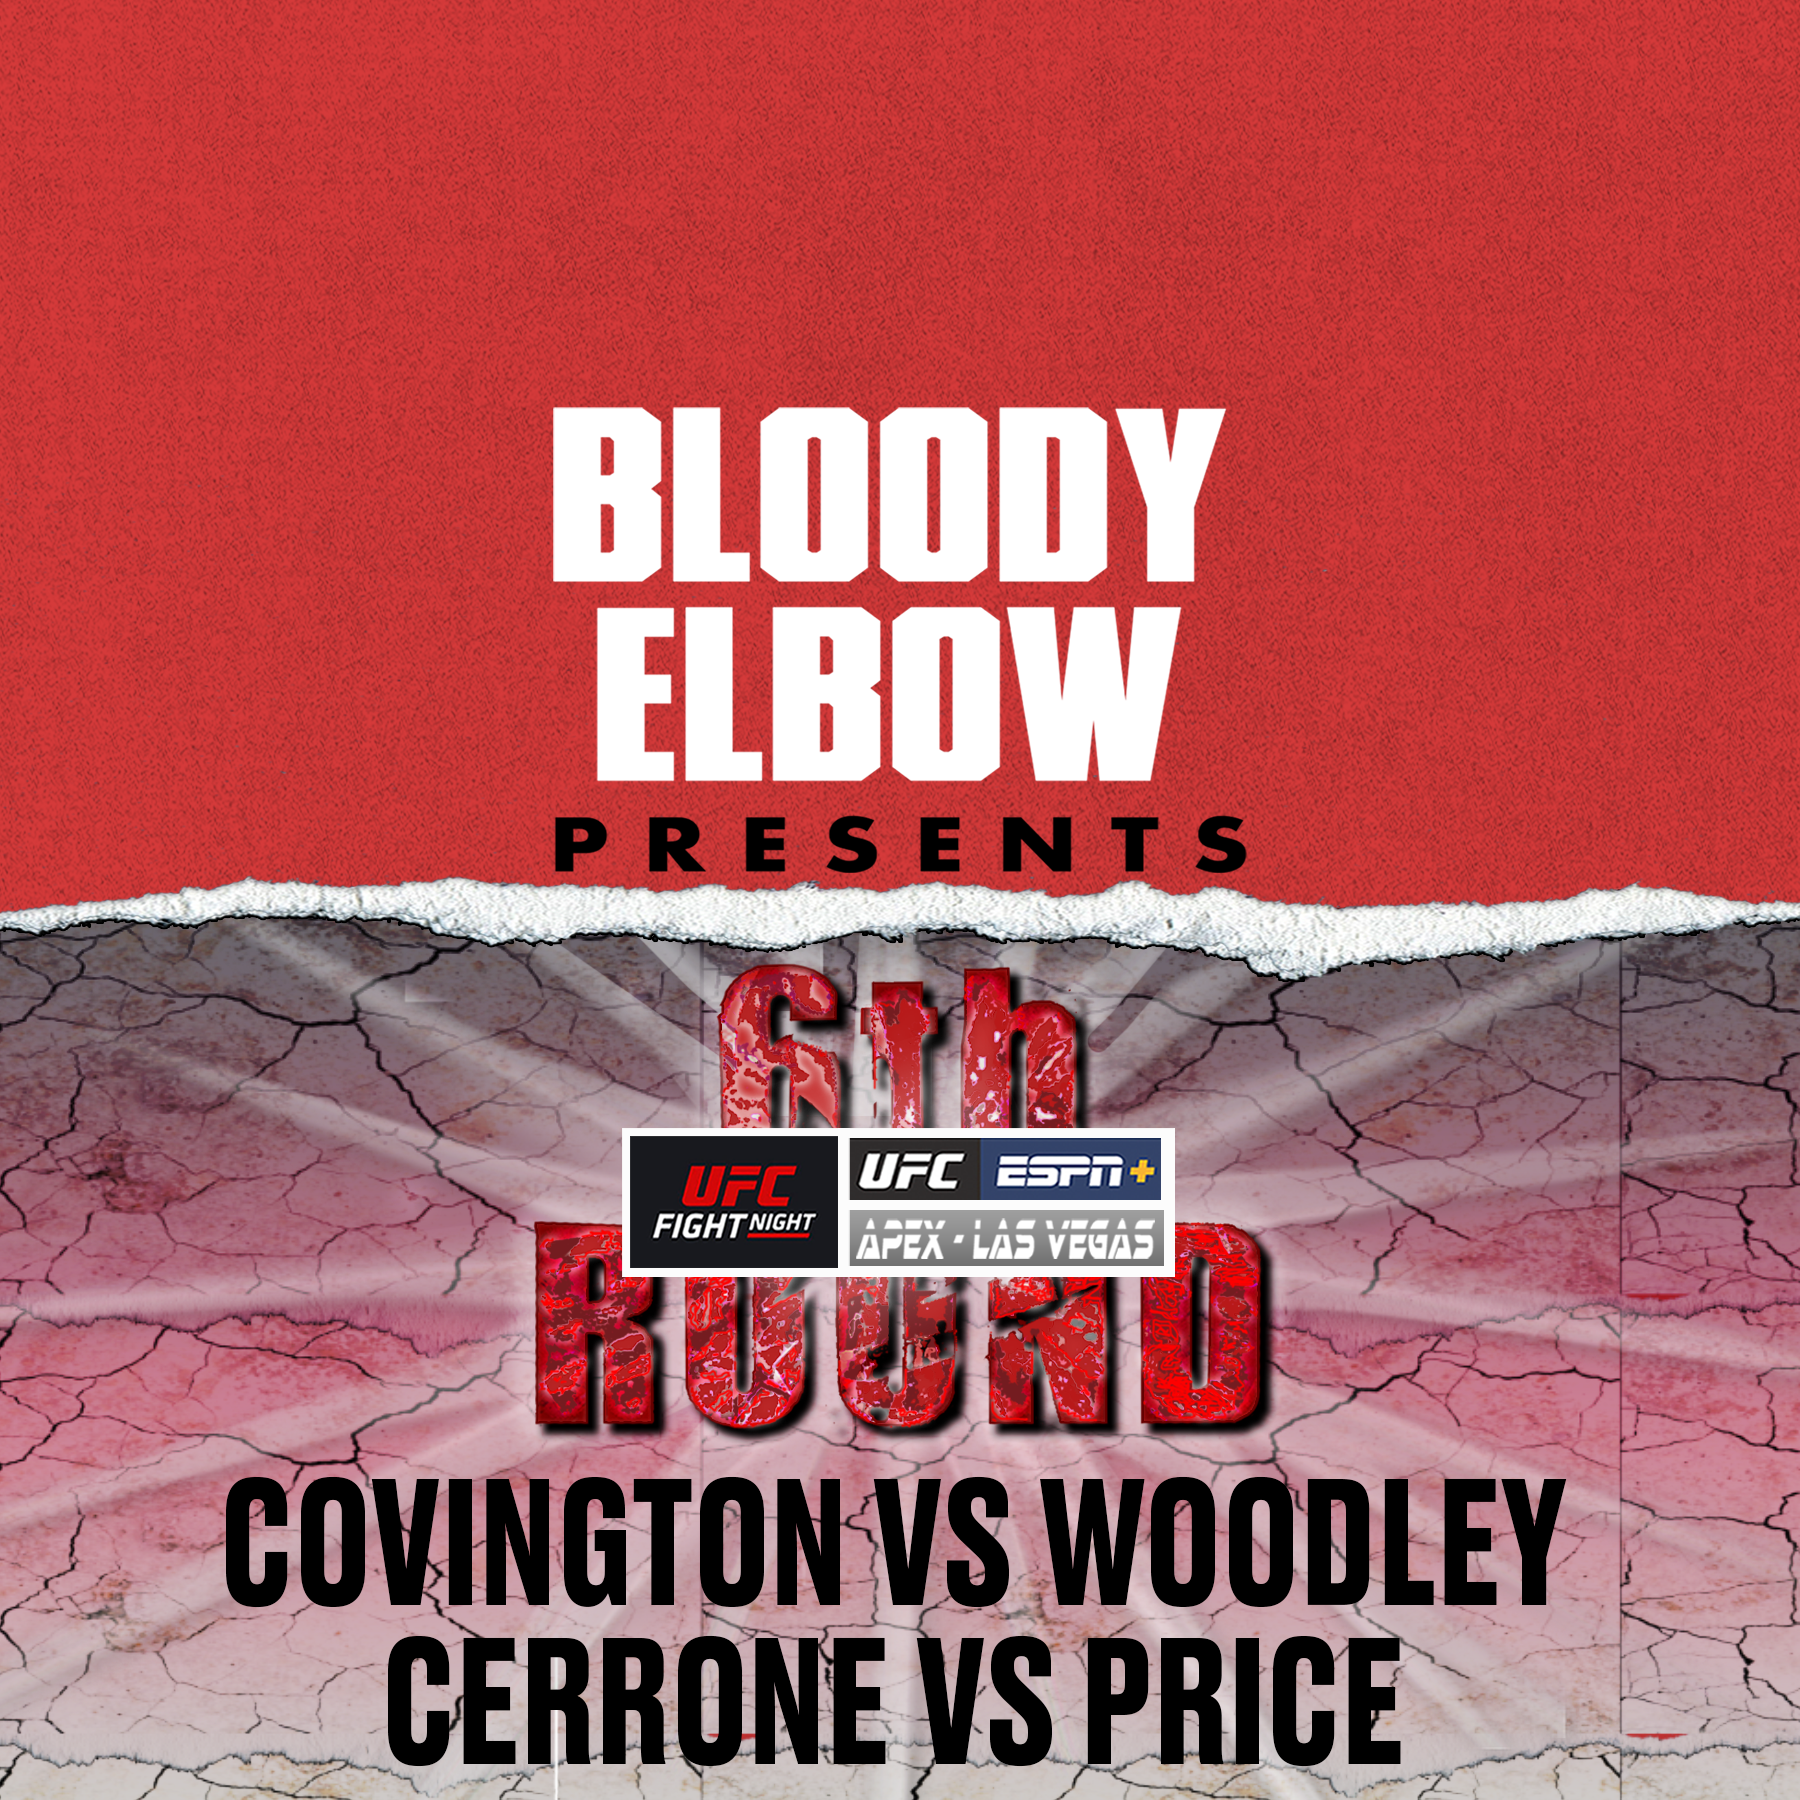 6th Rd, 6th Round Post Fight Show, UFC Vegas 11, Colby Covington vs Tyron Woodley, UFC Post Fight Show, UFC Results, UFC Reactions, UFC Analysis, UFC Next Fights